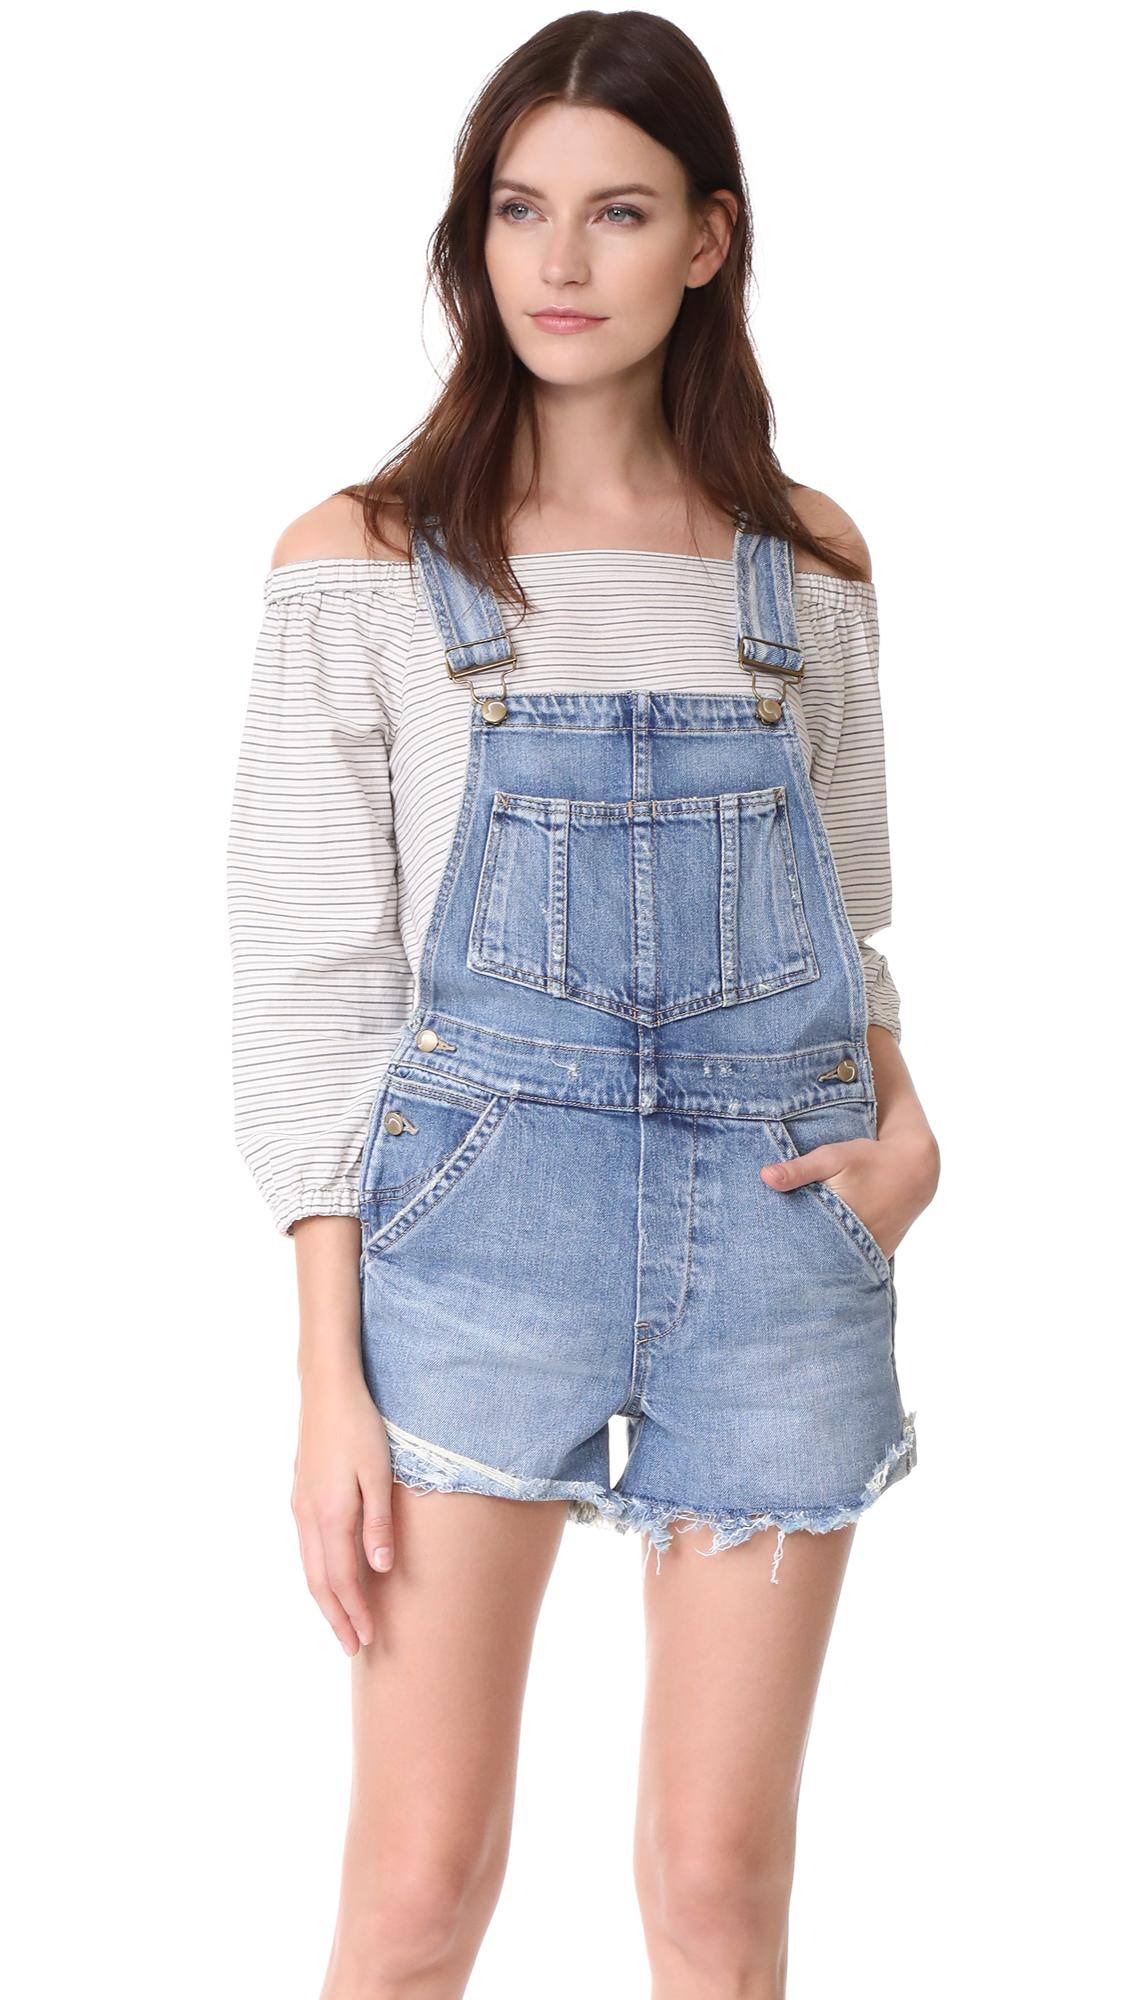 7751dc0291e Lyst - Joe s Jeans X Taylor Hill The Short Overalls in Blue